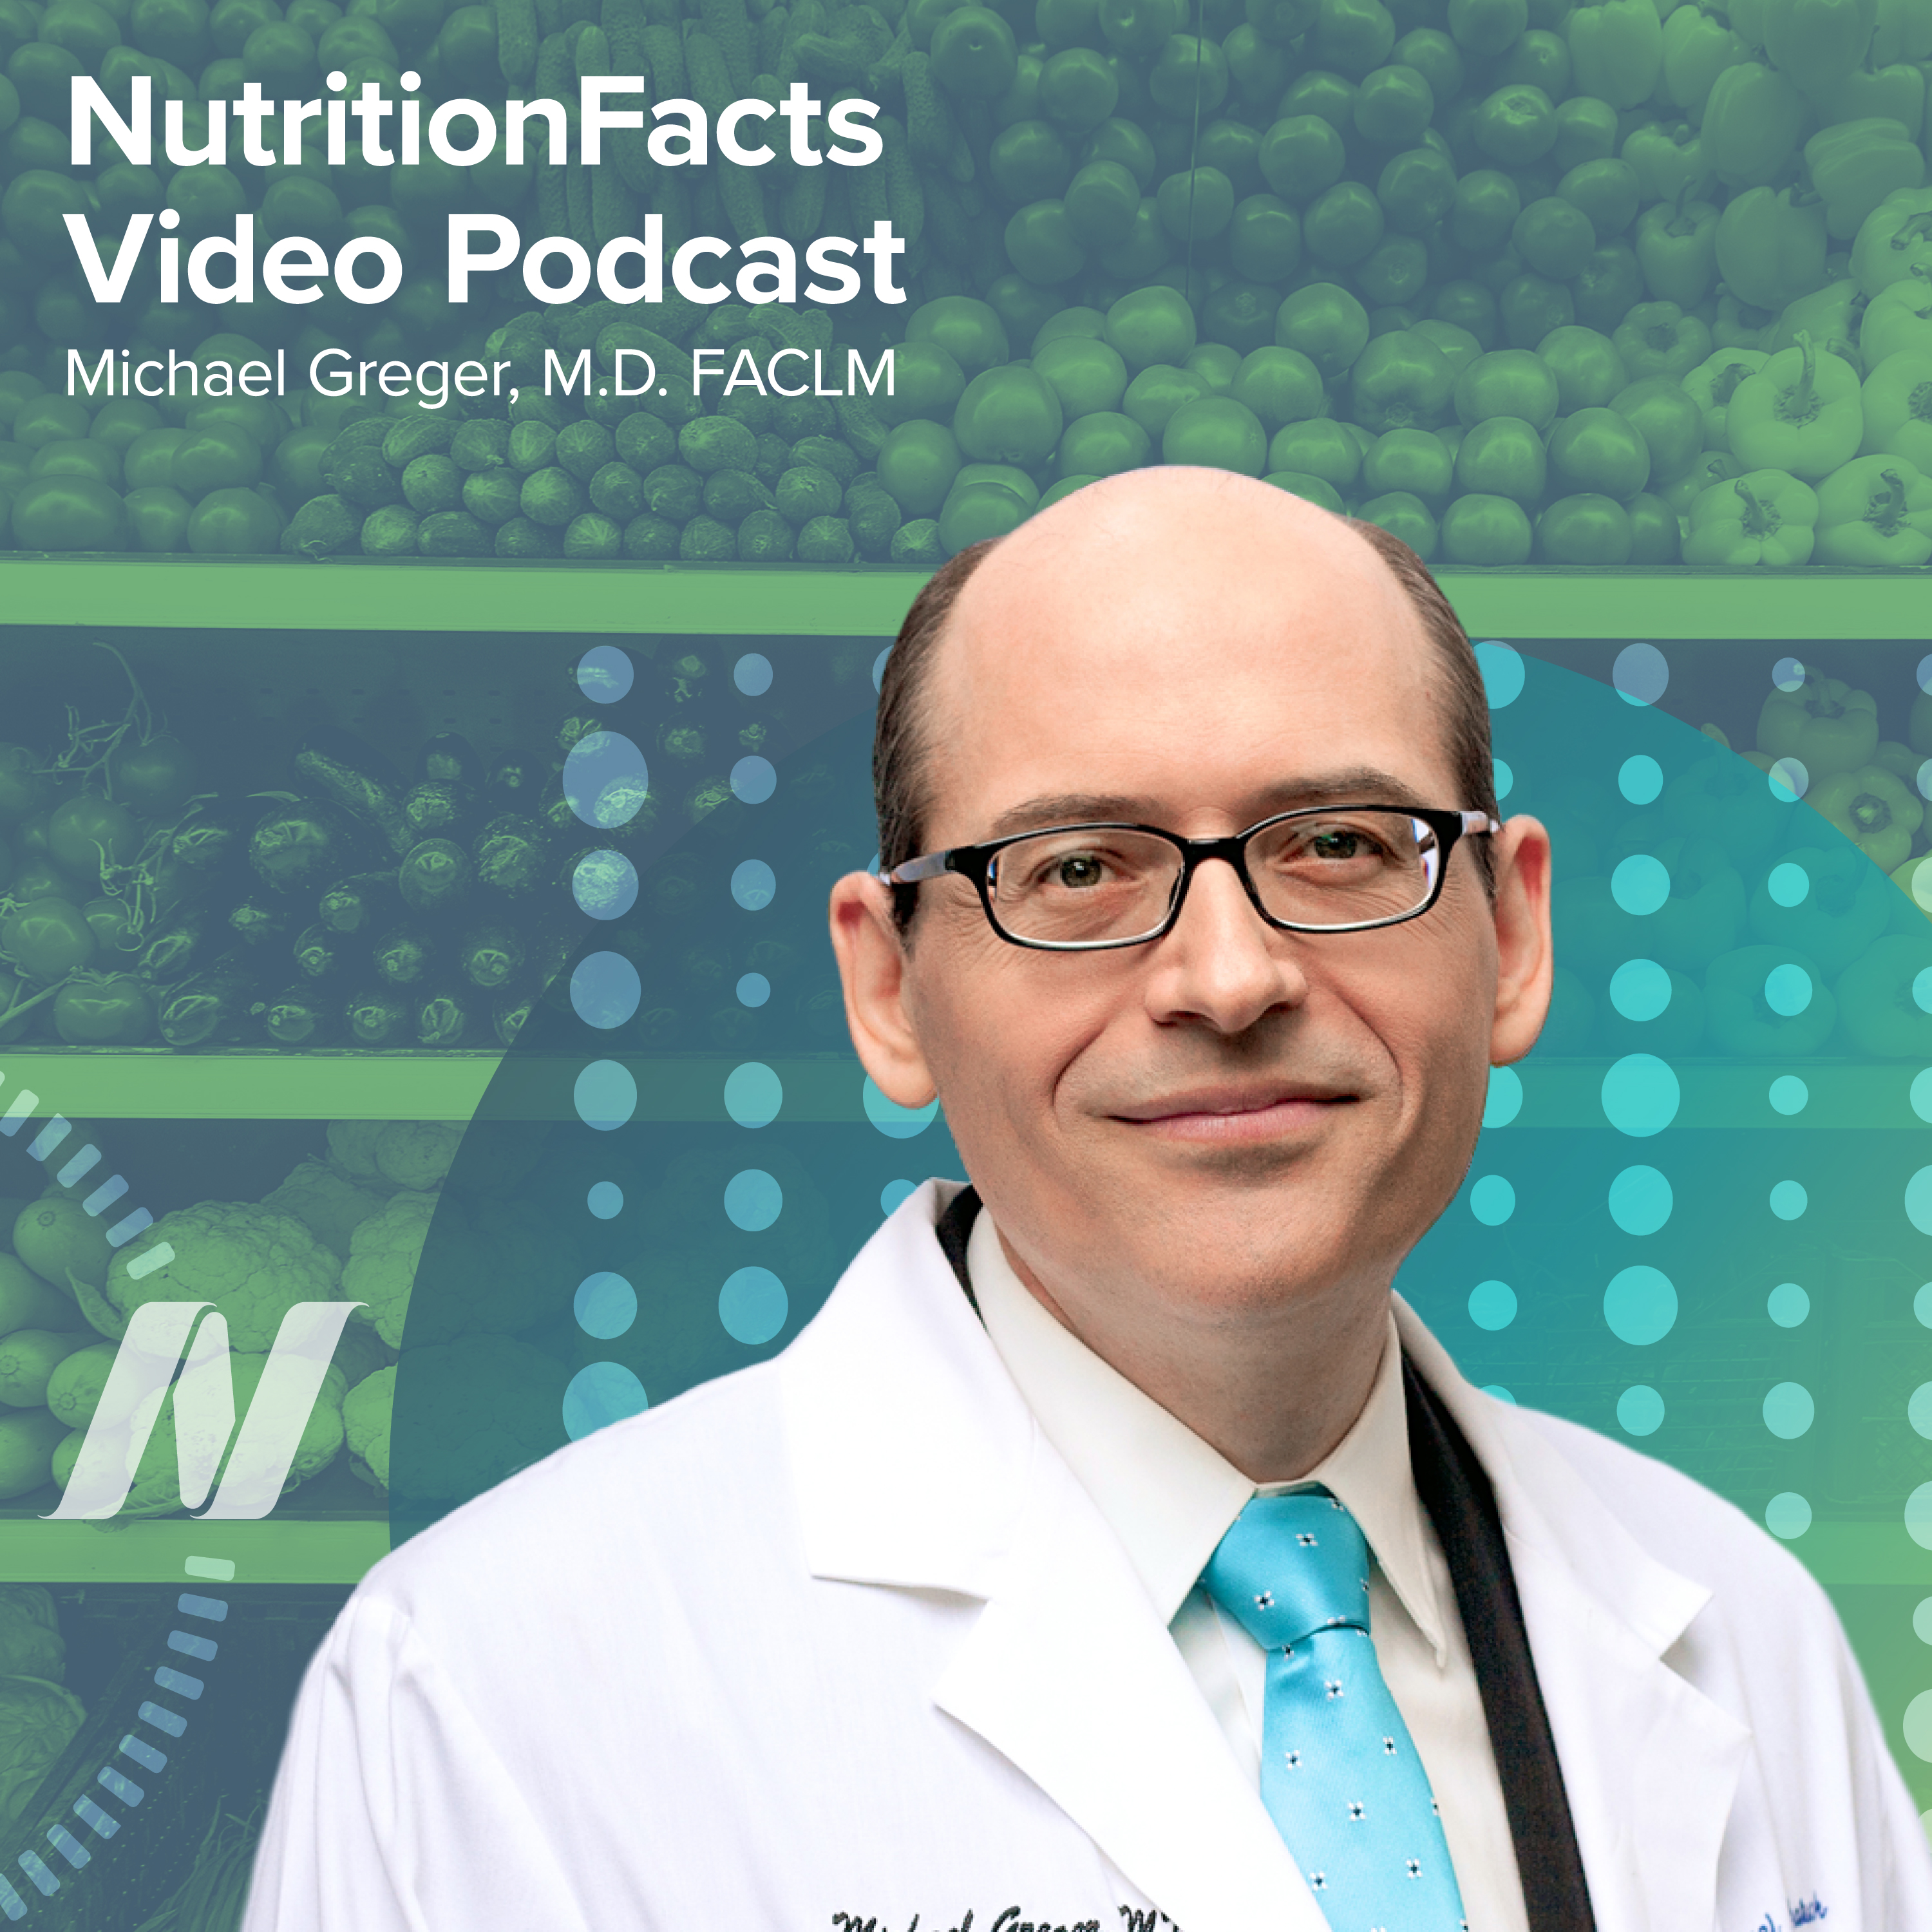 NutritionFacts.org Video Podcast